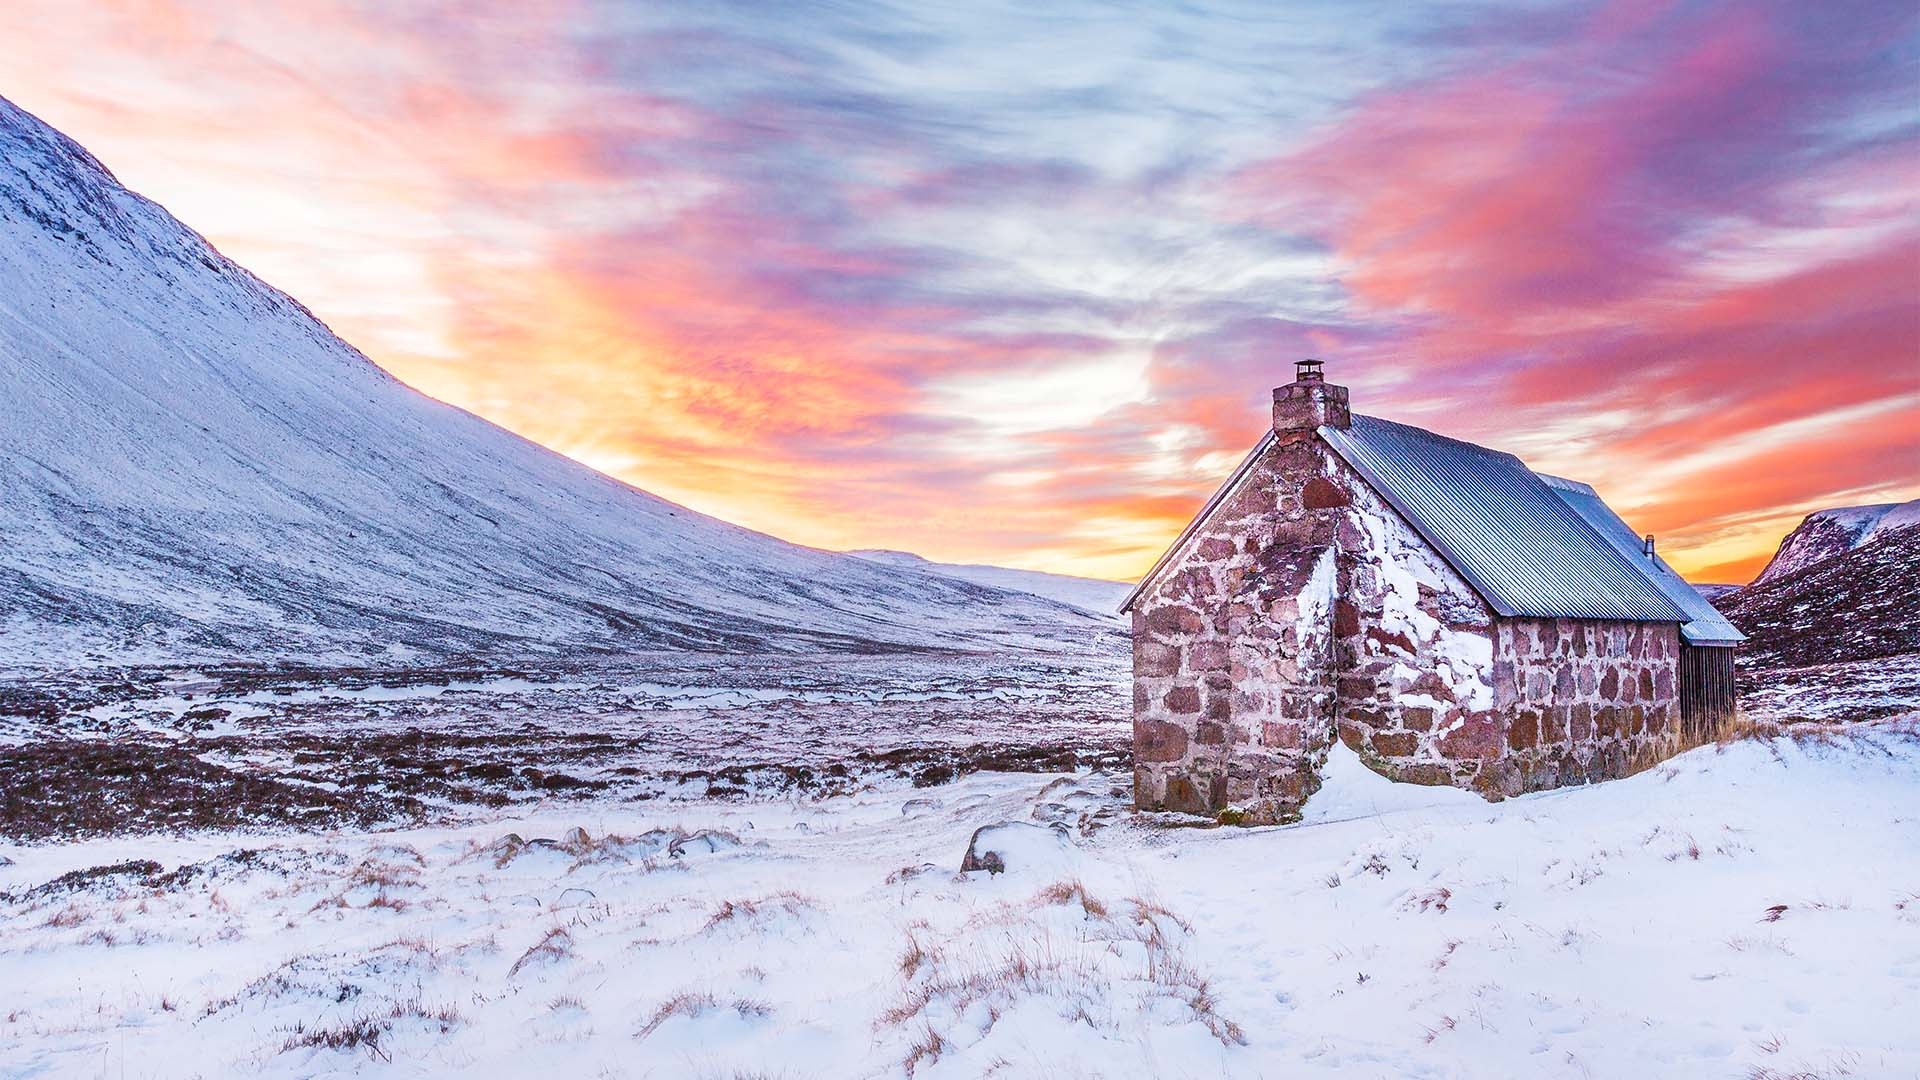 Bothy in the Scottish highlands